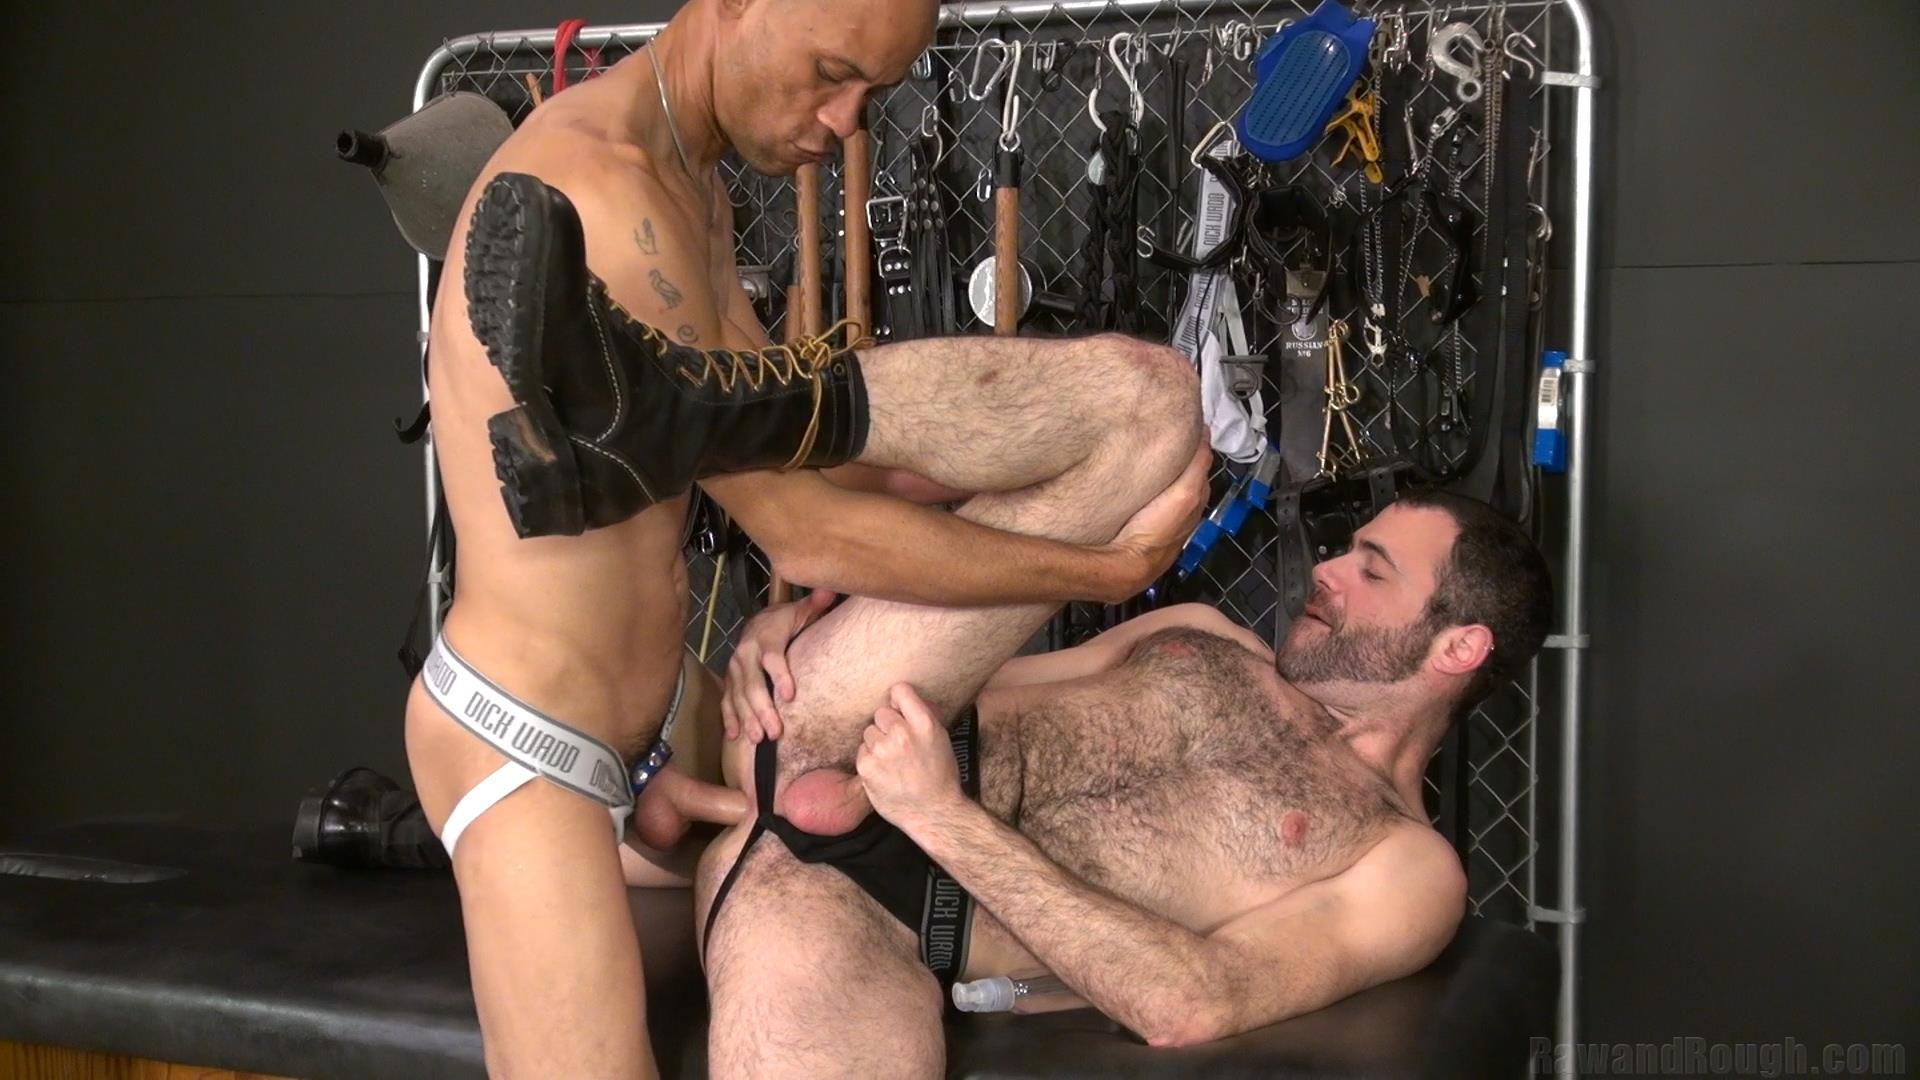 Raw-and-Rough-Dusty-Williams-and-Seth-Patrick-Barebacking-A-Stranger-at-A-Sex-Club-Hairy-Amateur-Gay-Porn-01 Barebacking A Hairy Guy At A Gay Sex Club